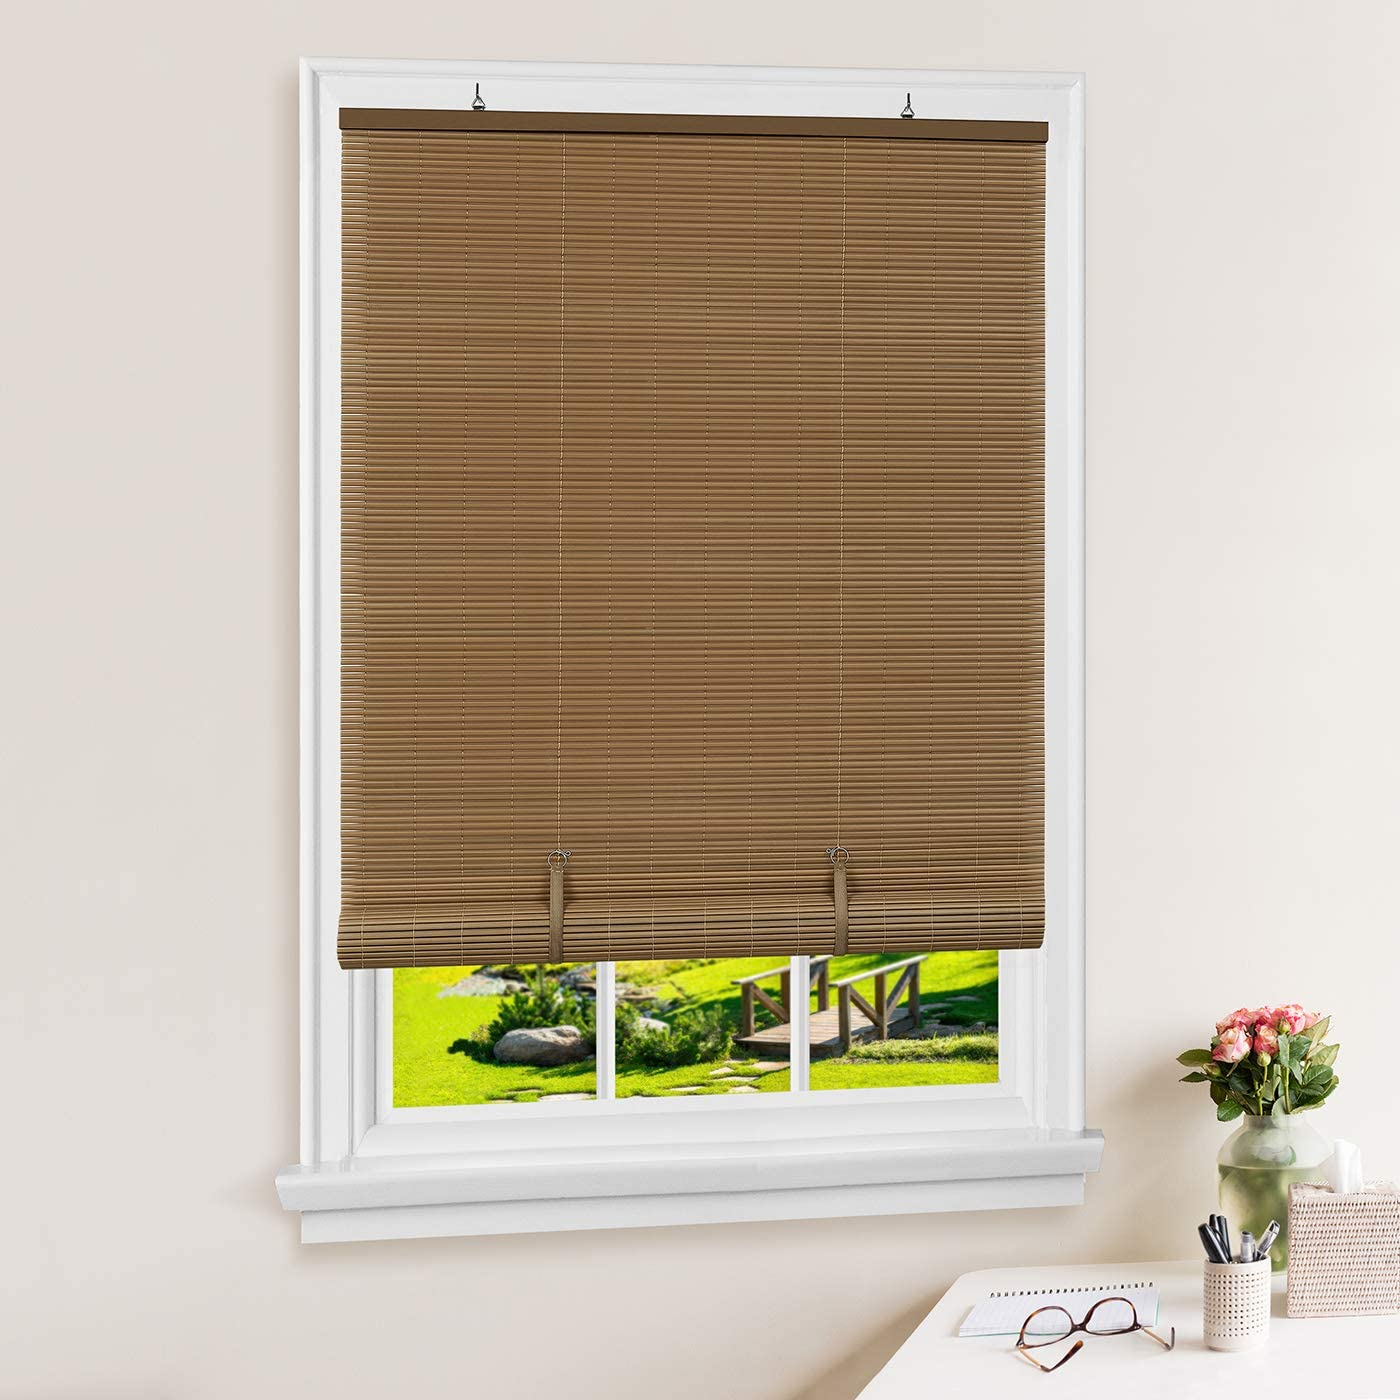 "PowerSellerUSA Oval Cordless Outdoor Rollup Light Filtering Window Blinds Roller Shades: 72"" Width x 72"" Length"